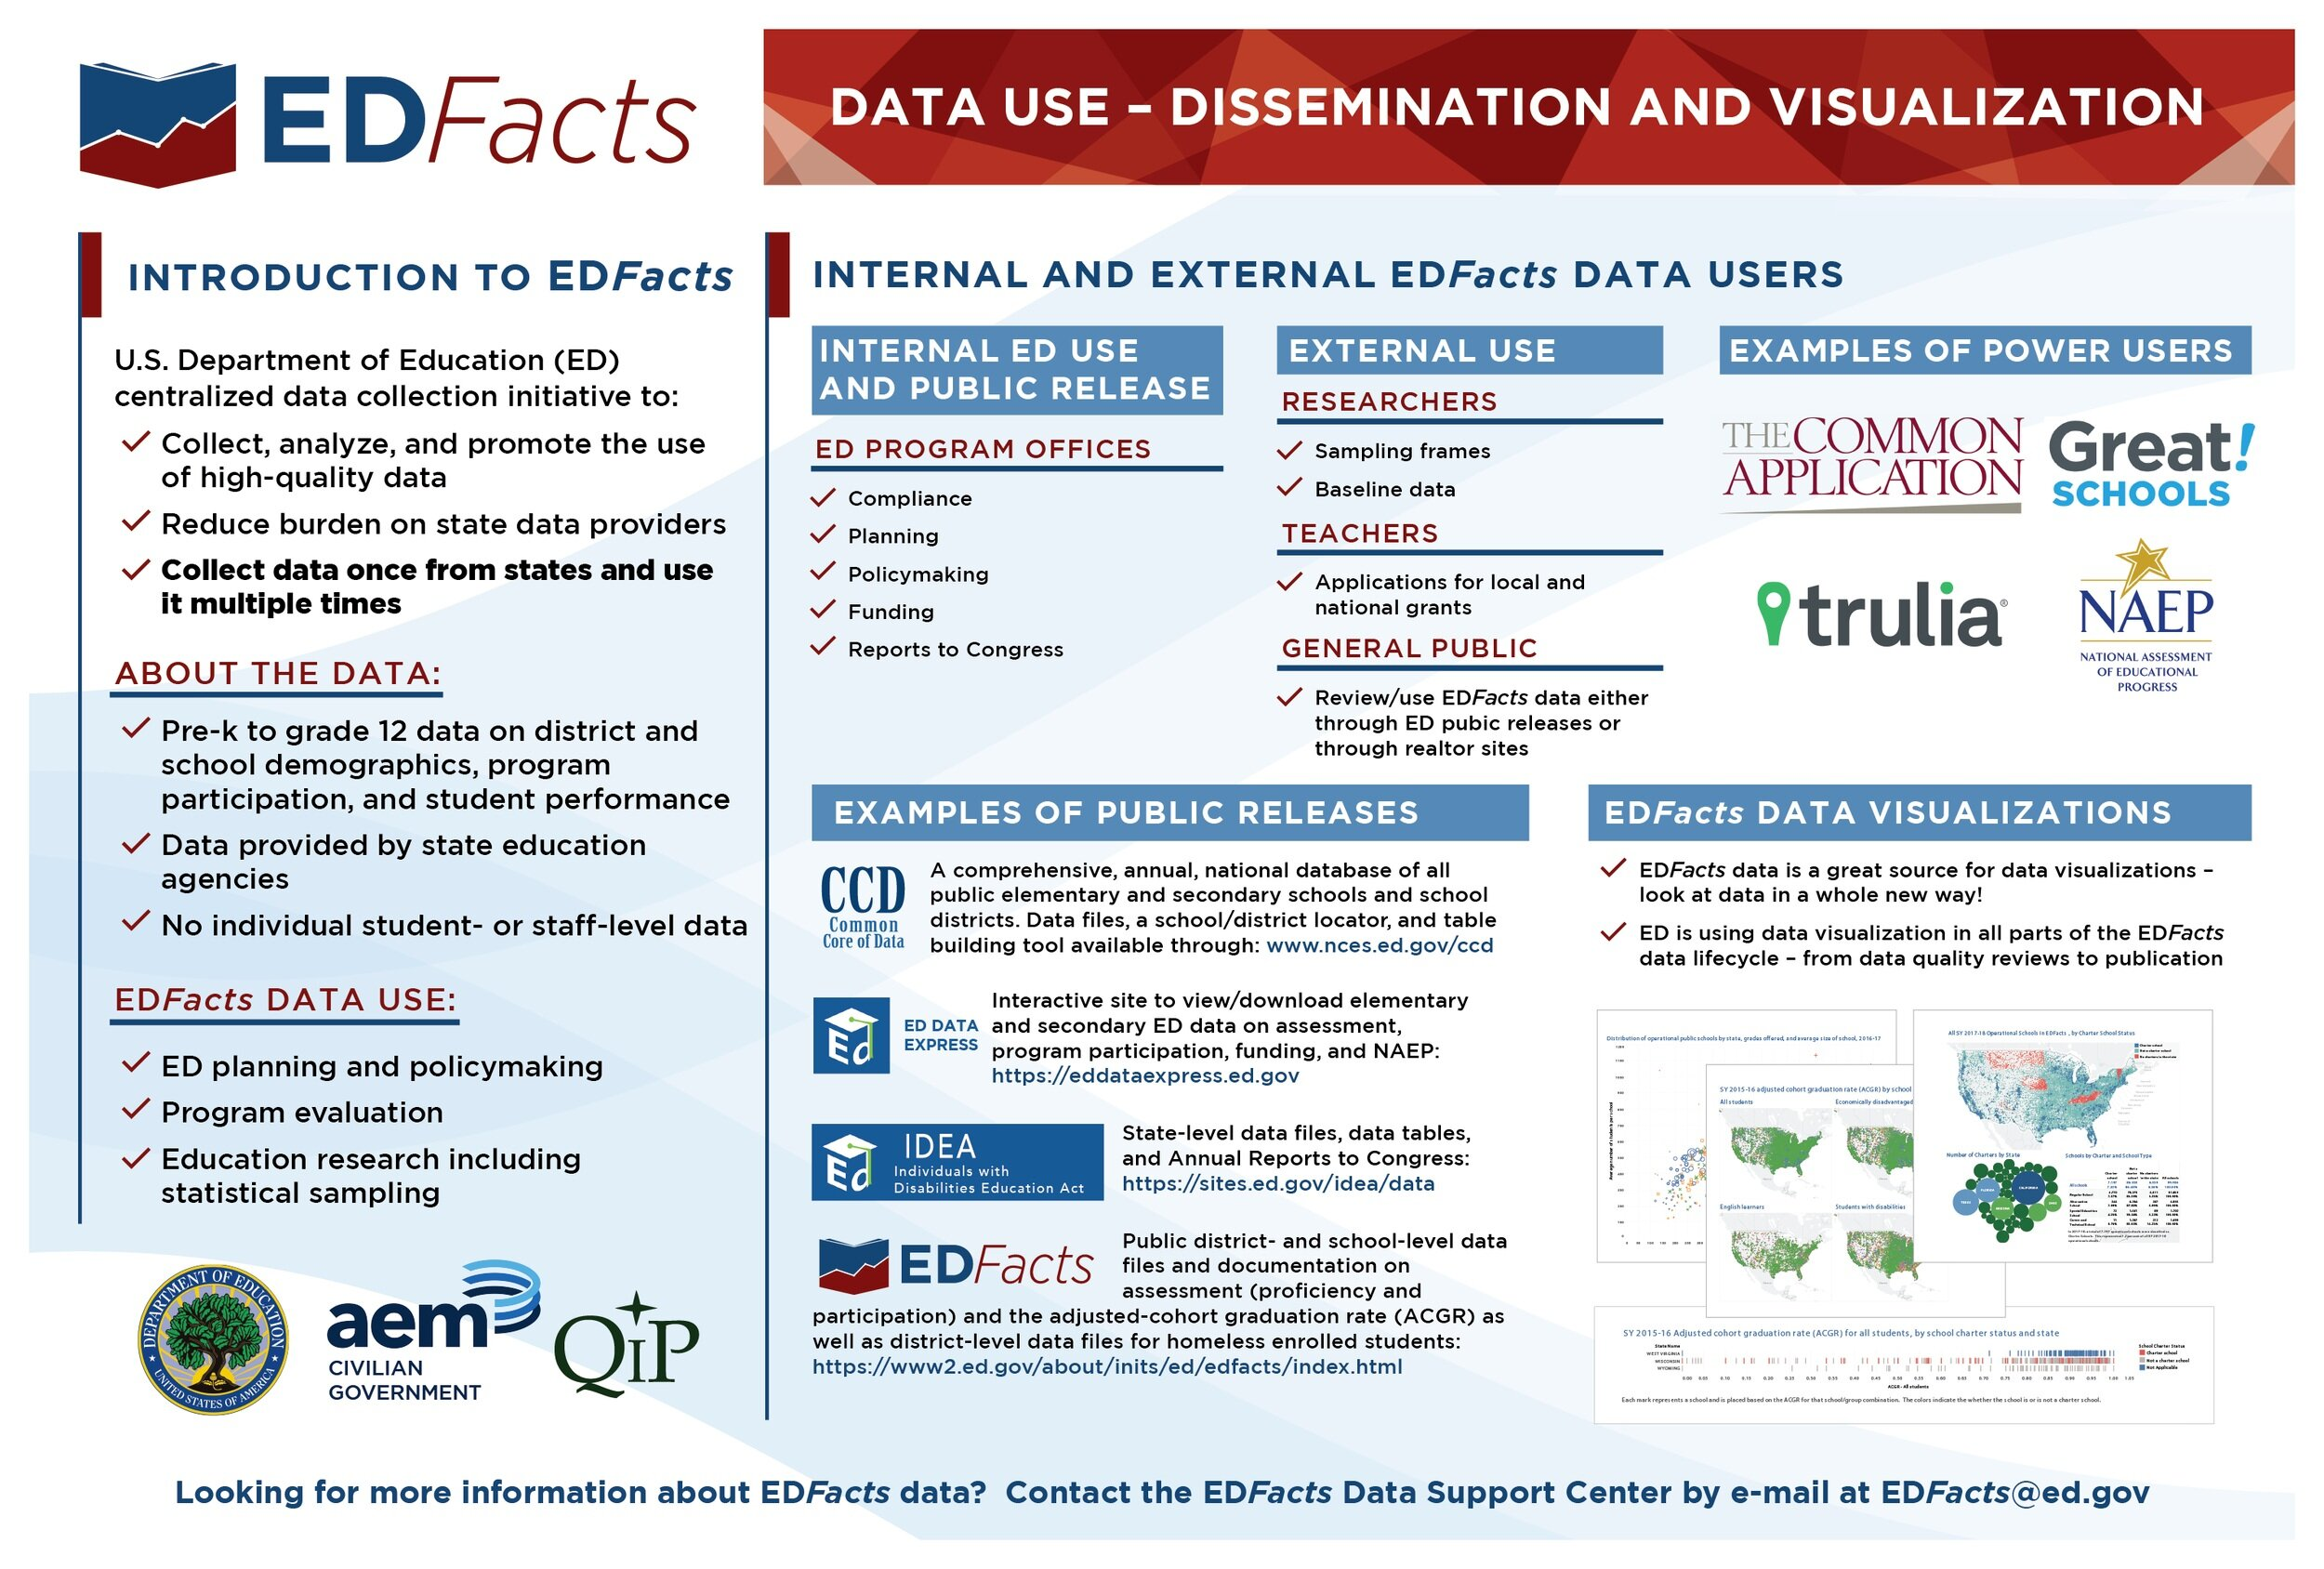 EDFacts Dissemination and Visualization